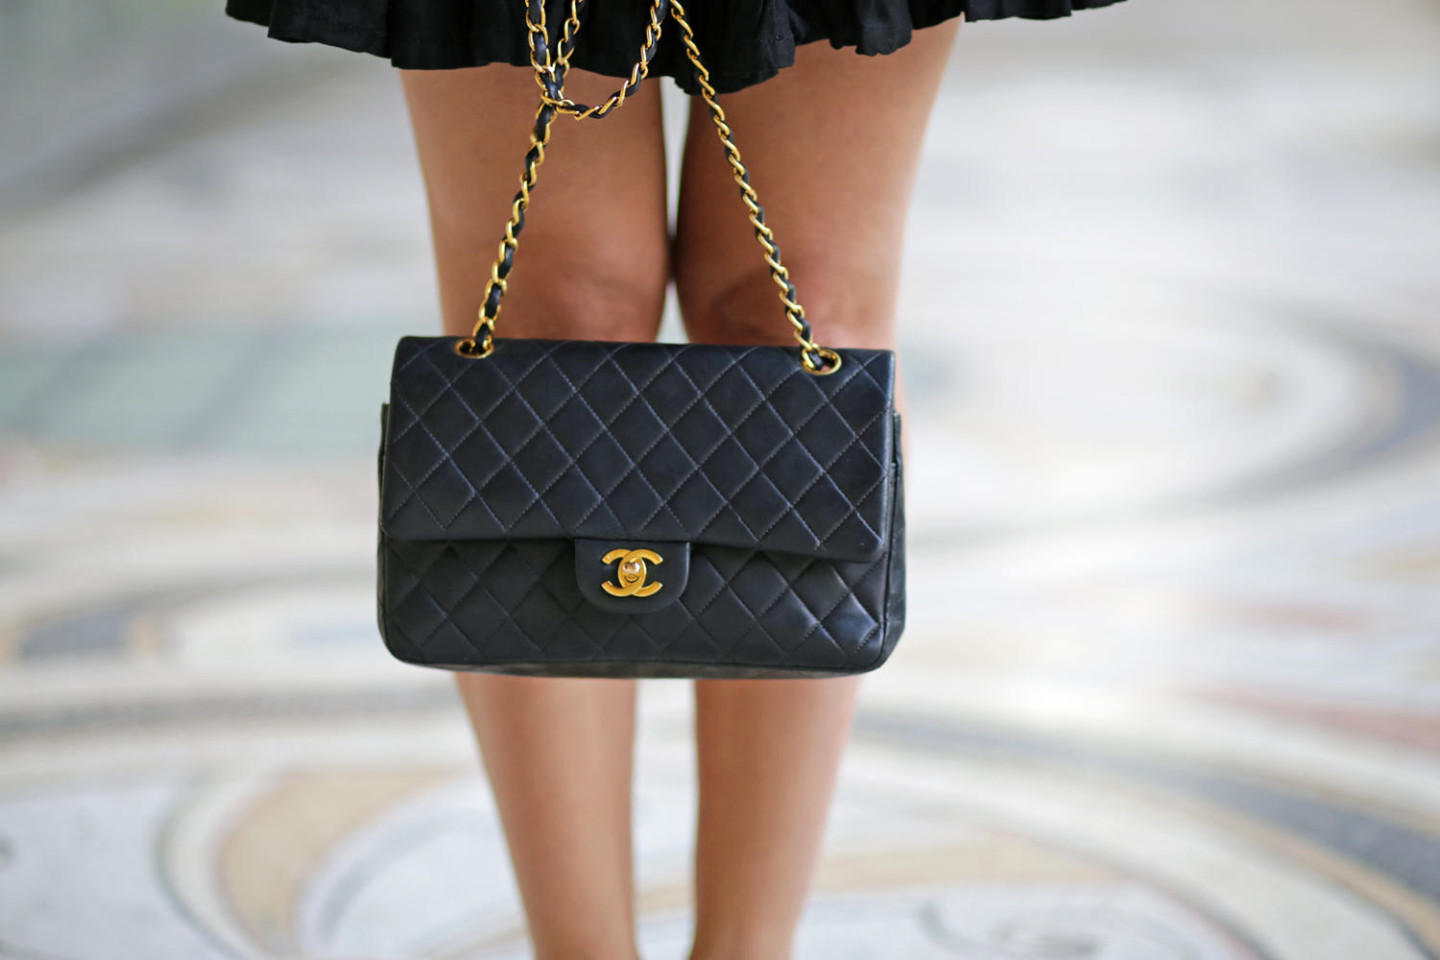 black chanel classic vintage bag with gold details